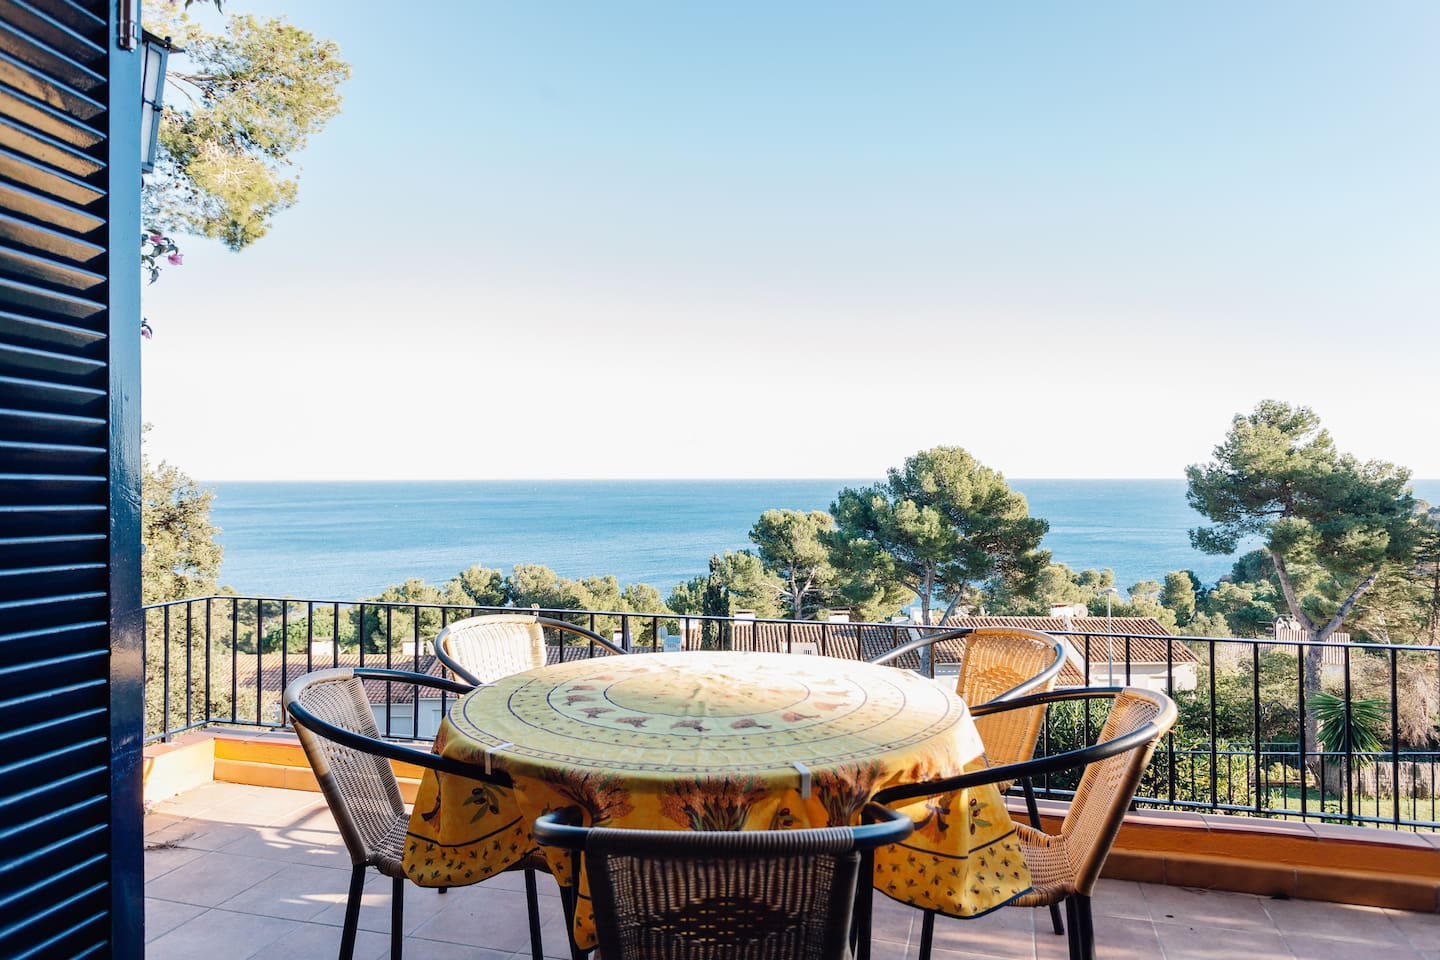 Downstairs terrace with views over the gardens and the sea.